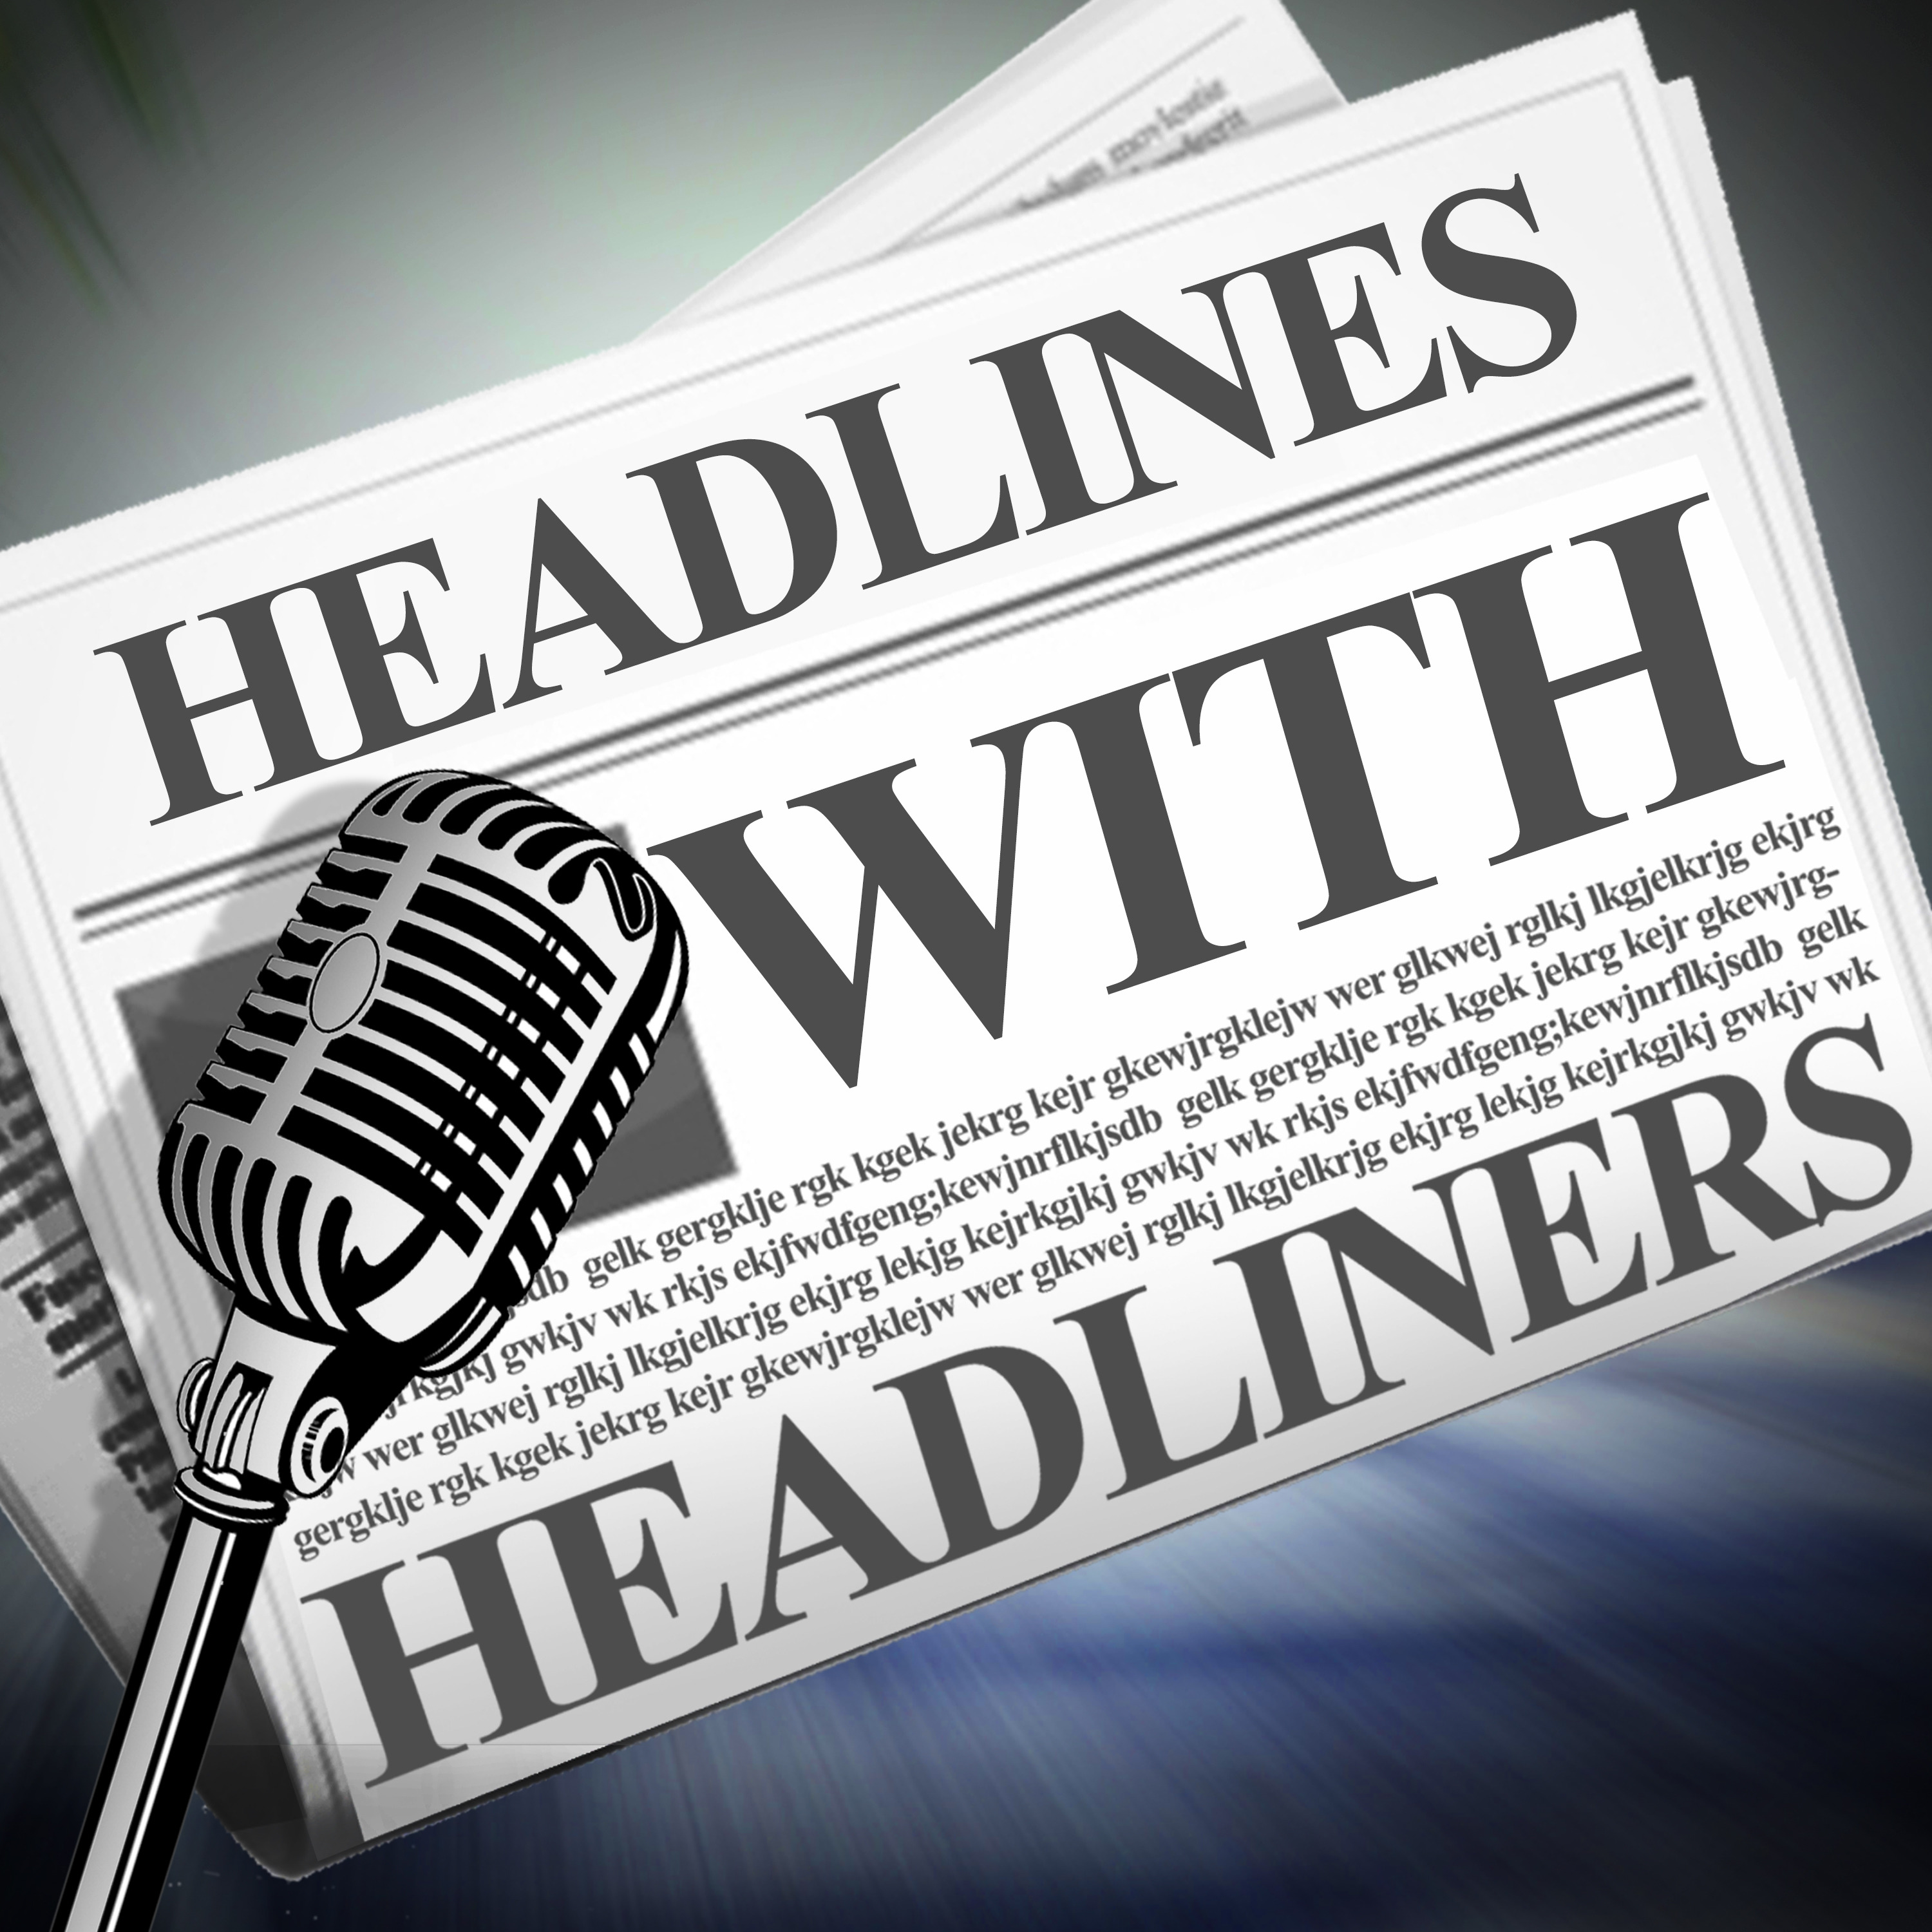 Headlines with Headliners